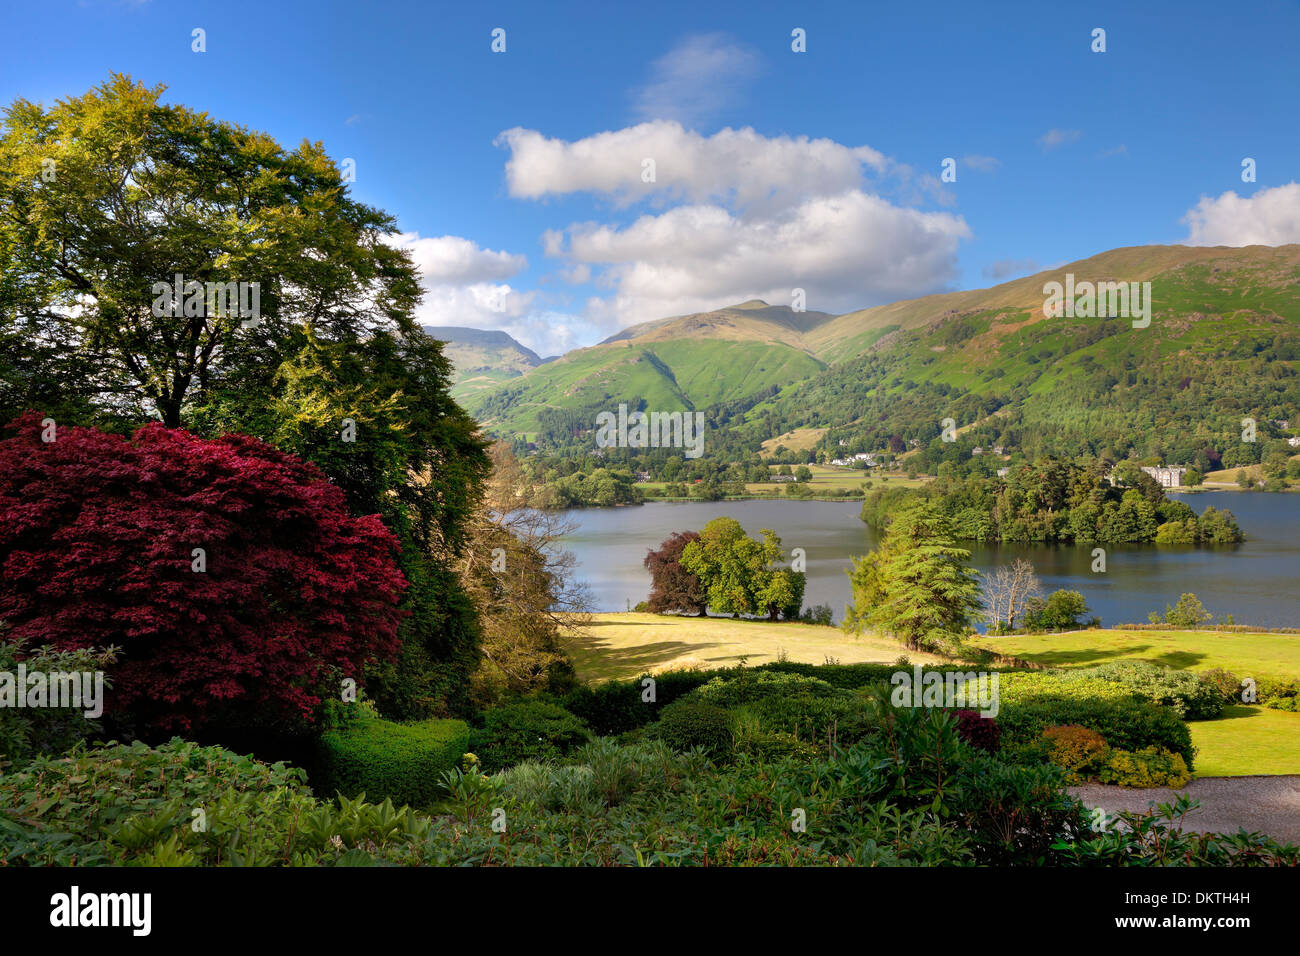 Grasmere, the Lake District, Cumbria, England. - Stock Image